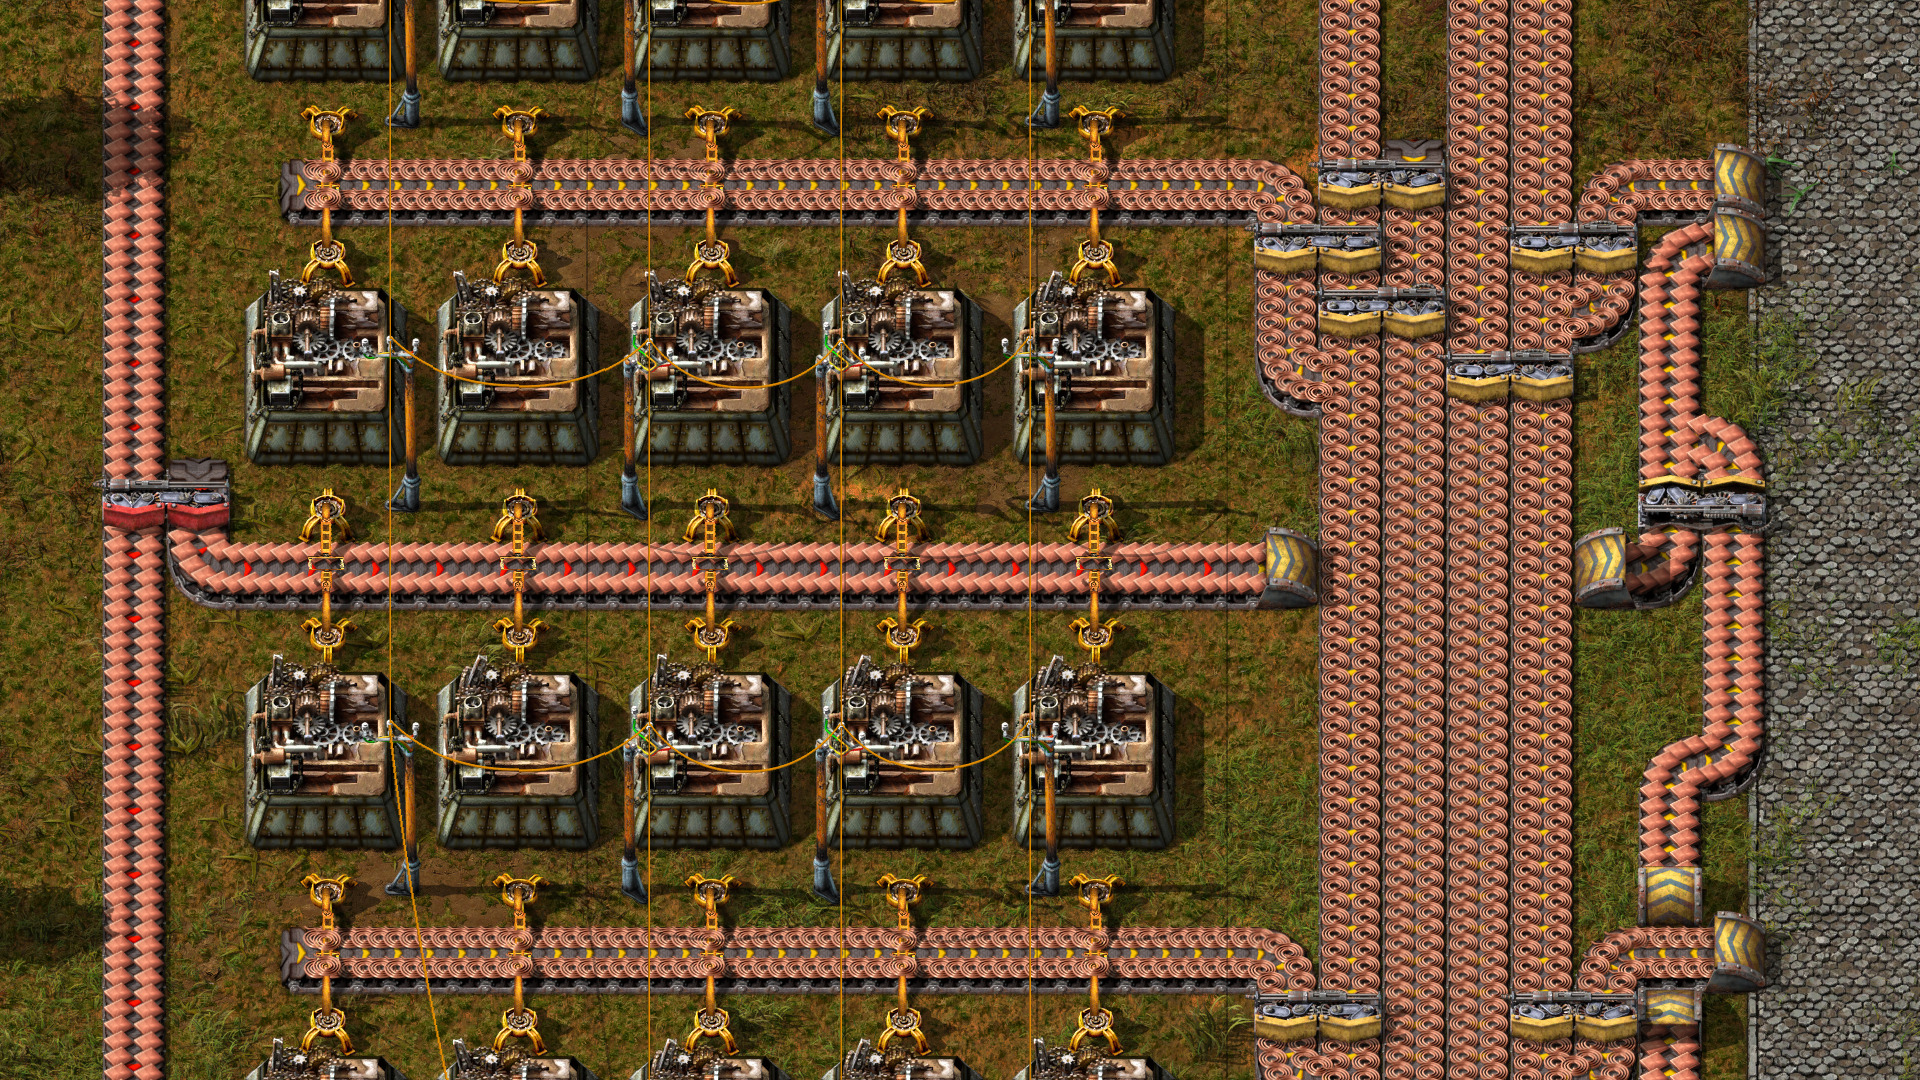 Images of Green Circuit Factorio - #rock-cafe